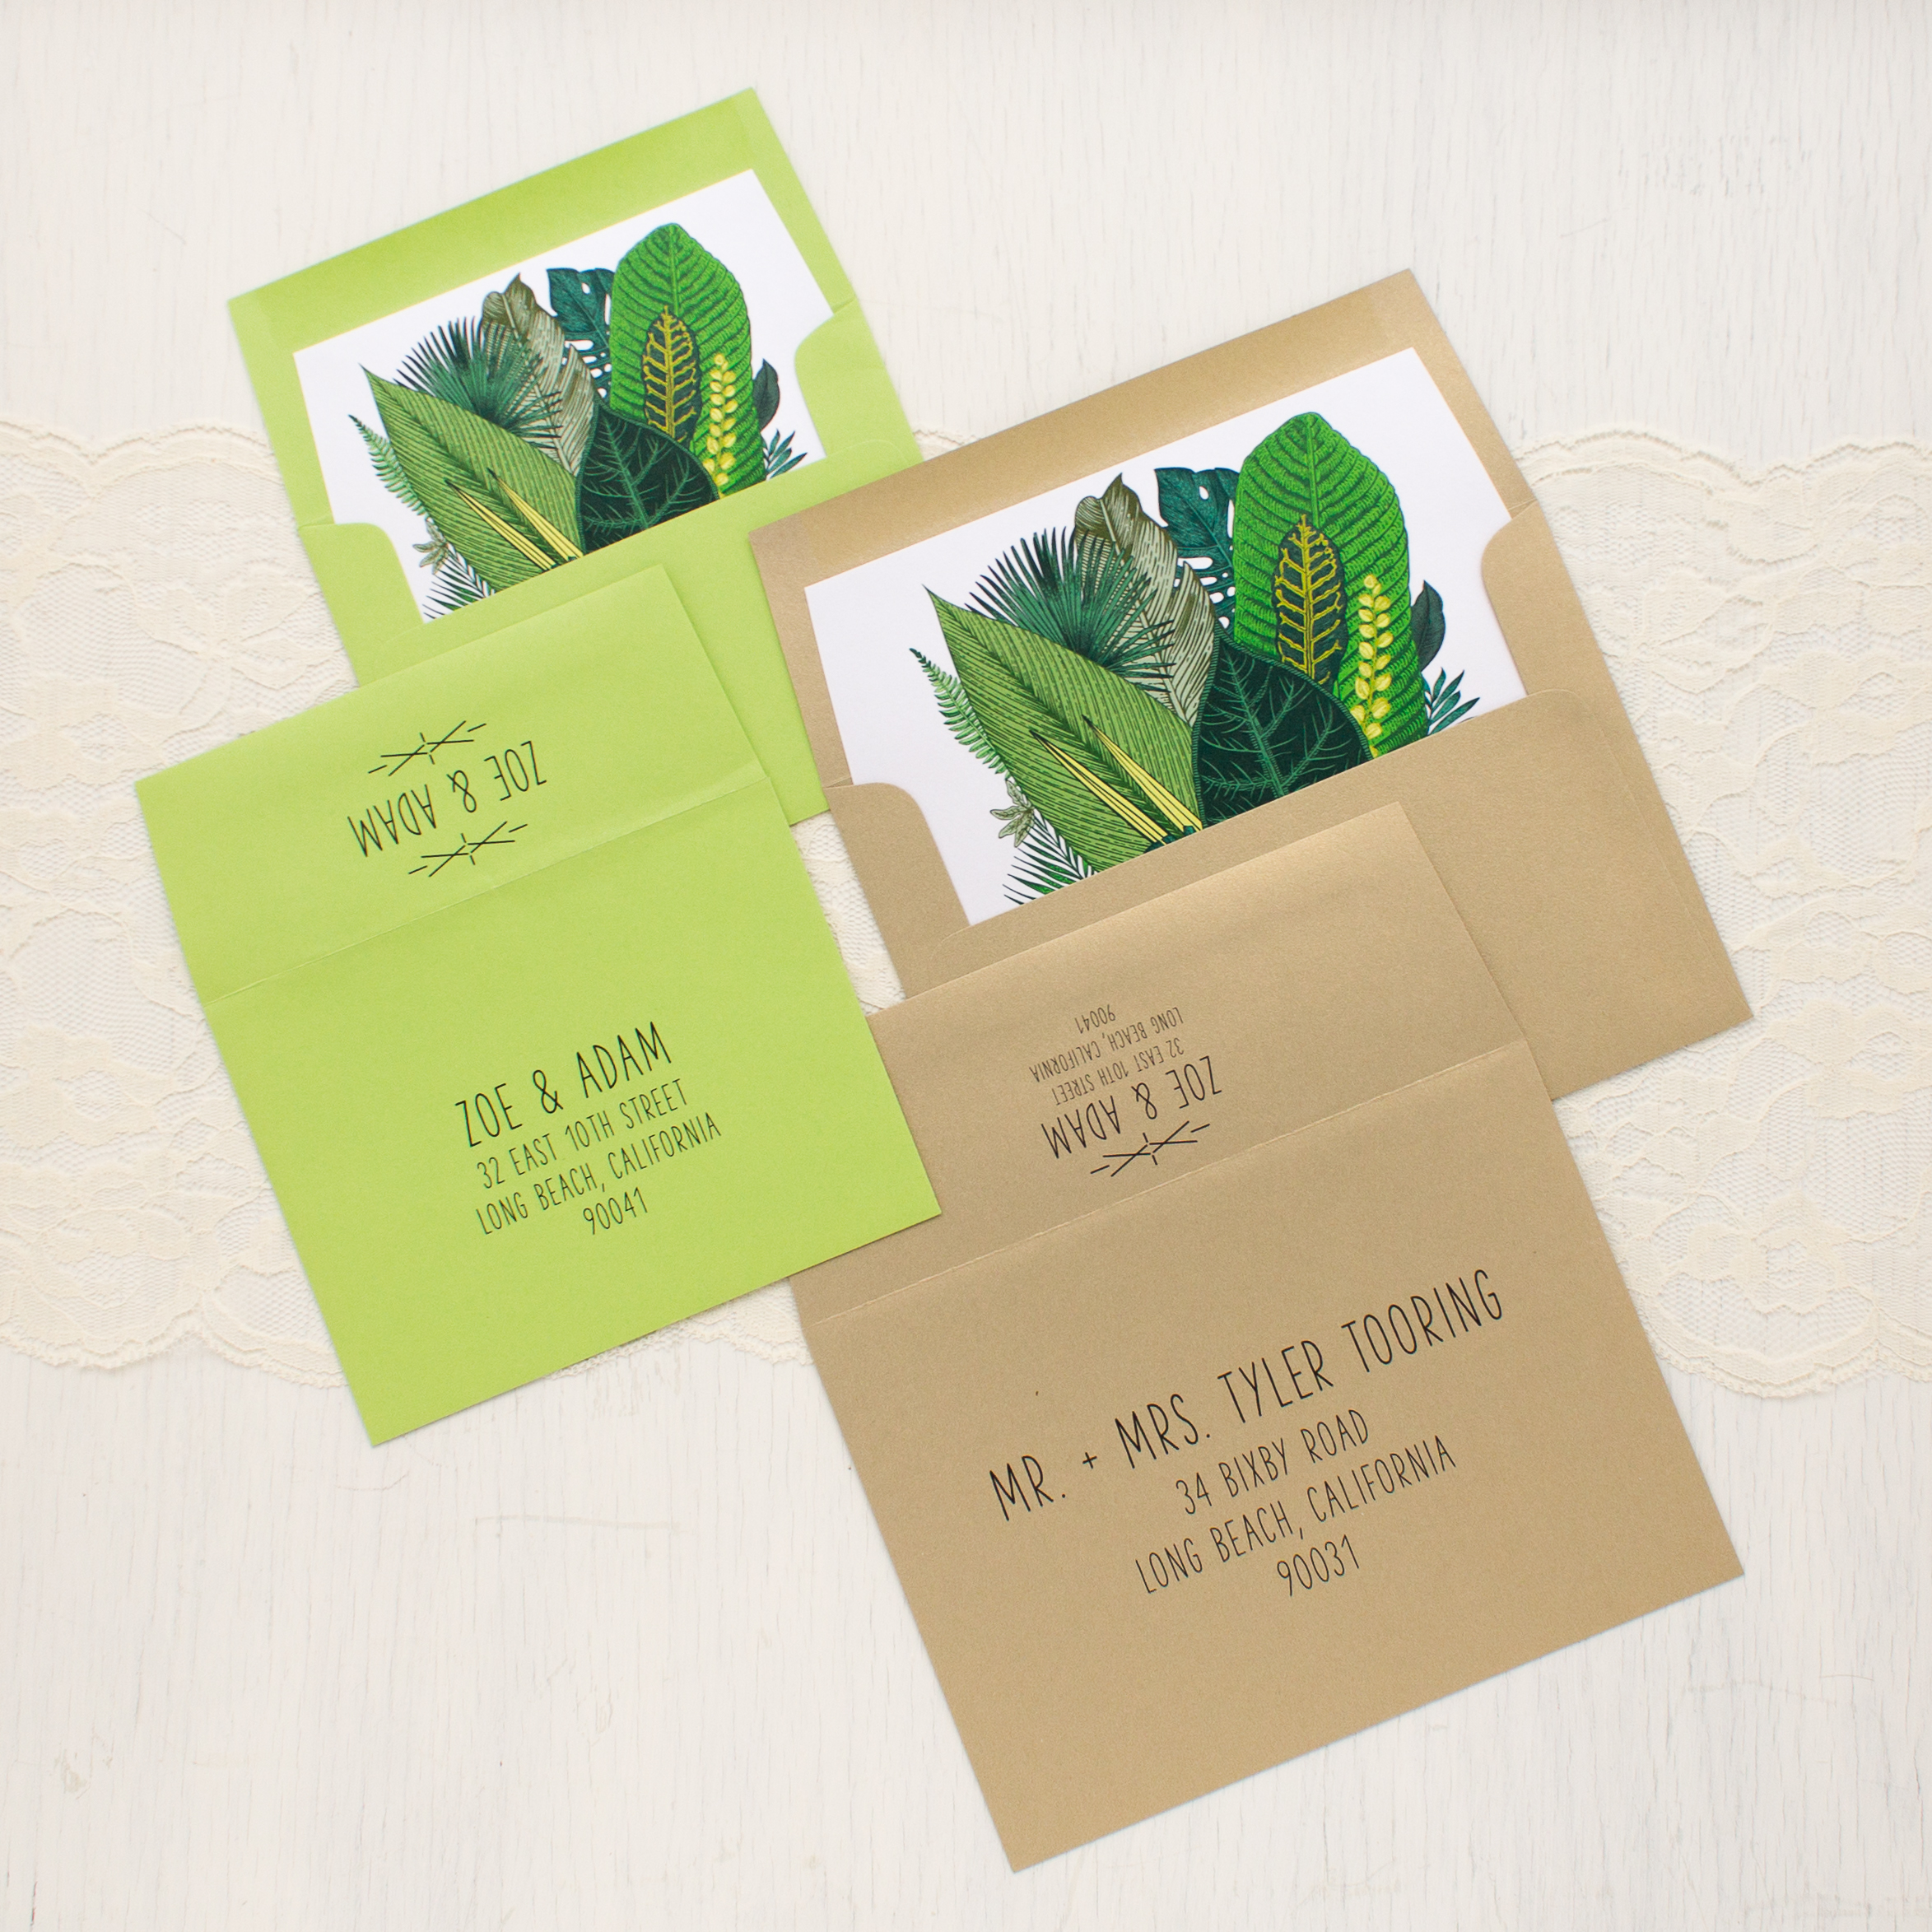 Green Leaf Gold Foil Wedding Invitations | Beacon Lane